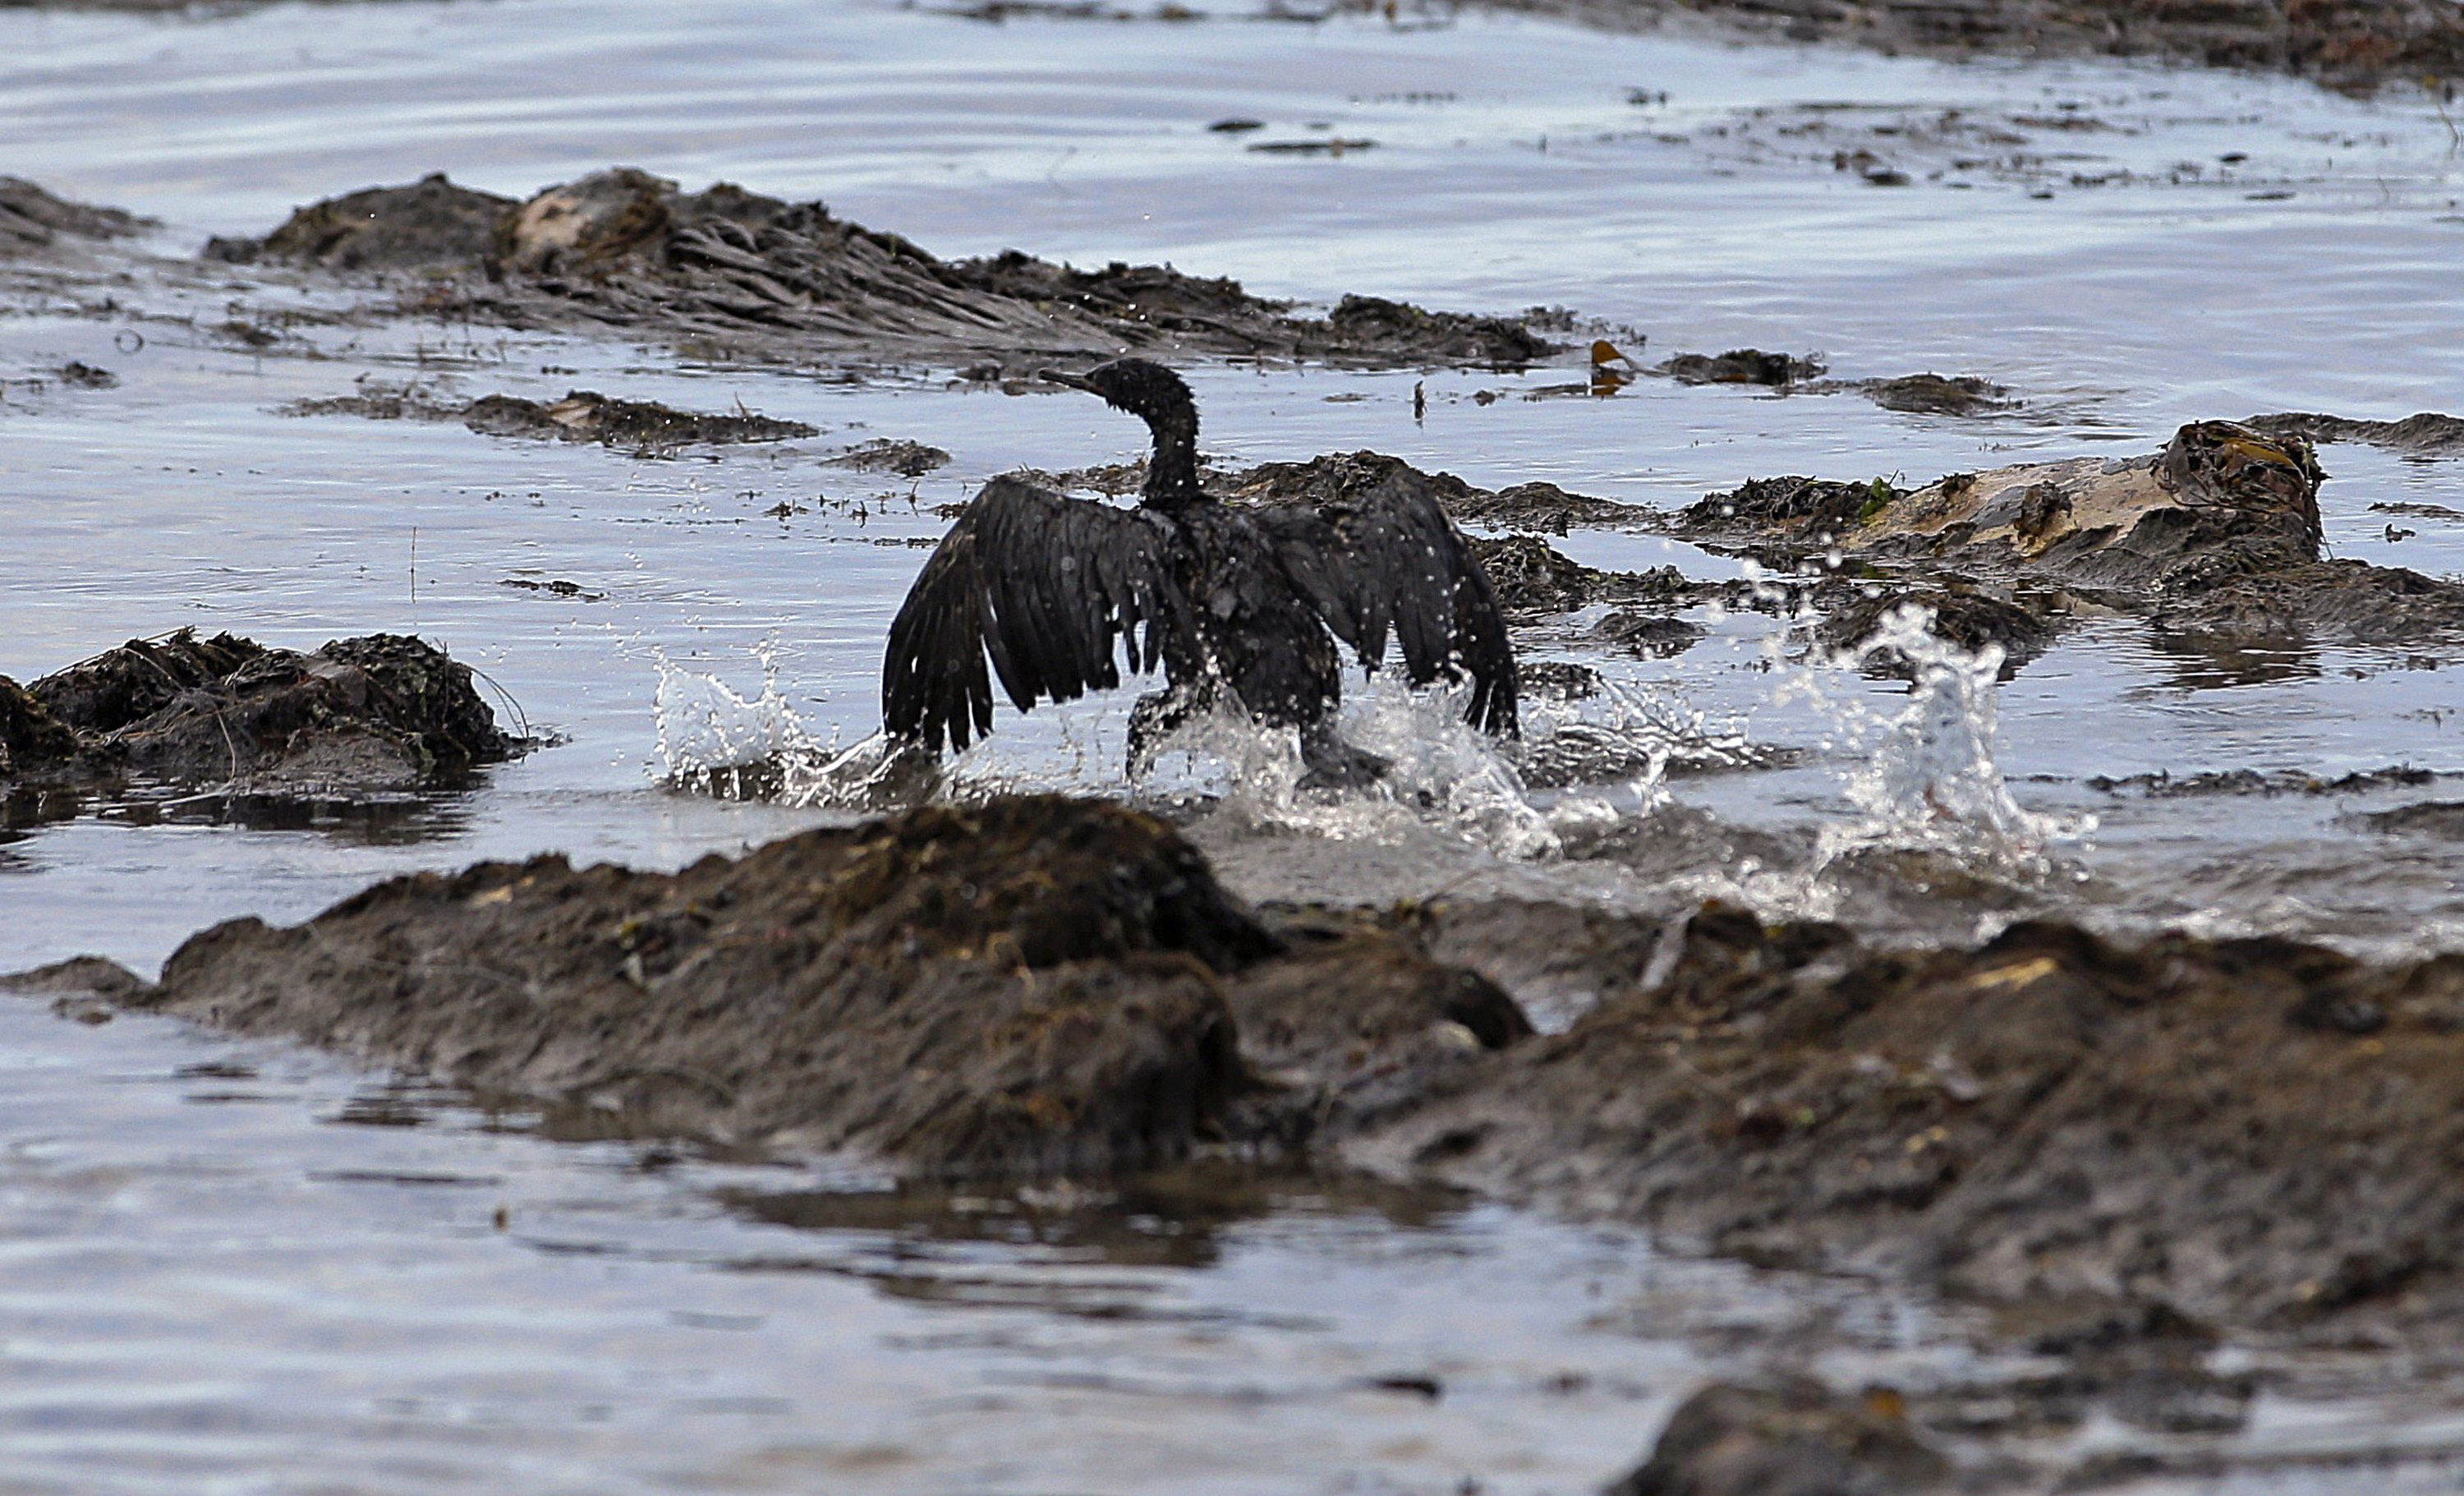 Texas' Plains All American Pipeline indicted for California oil spill